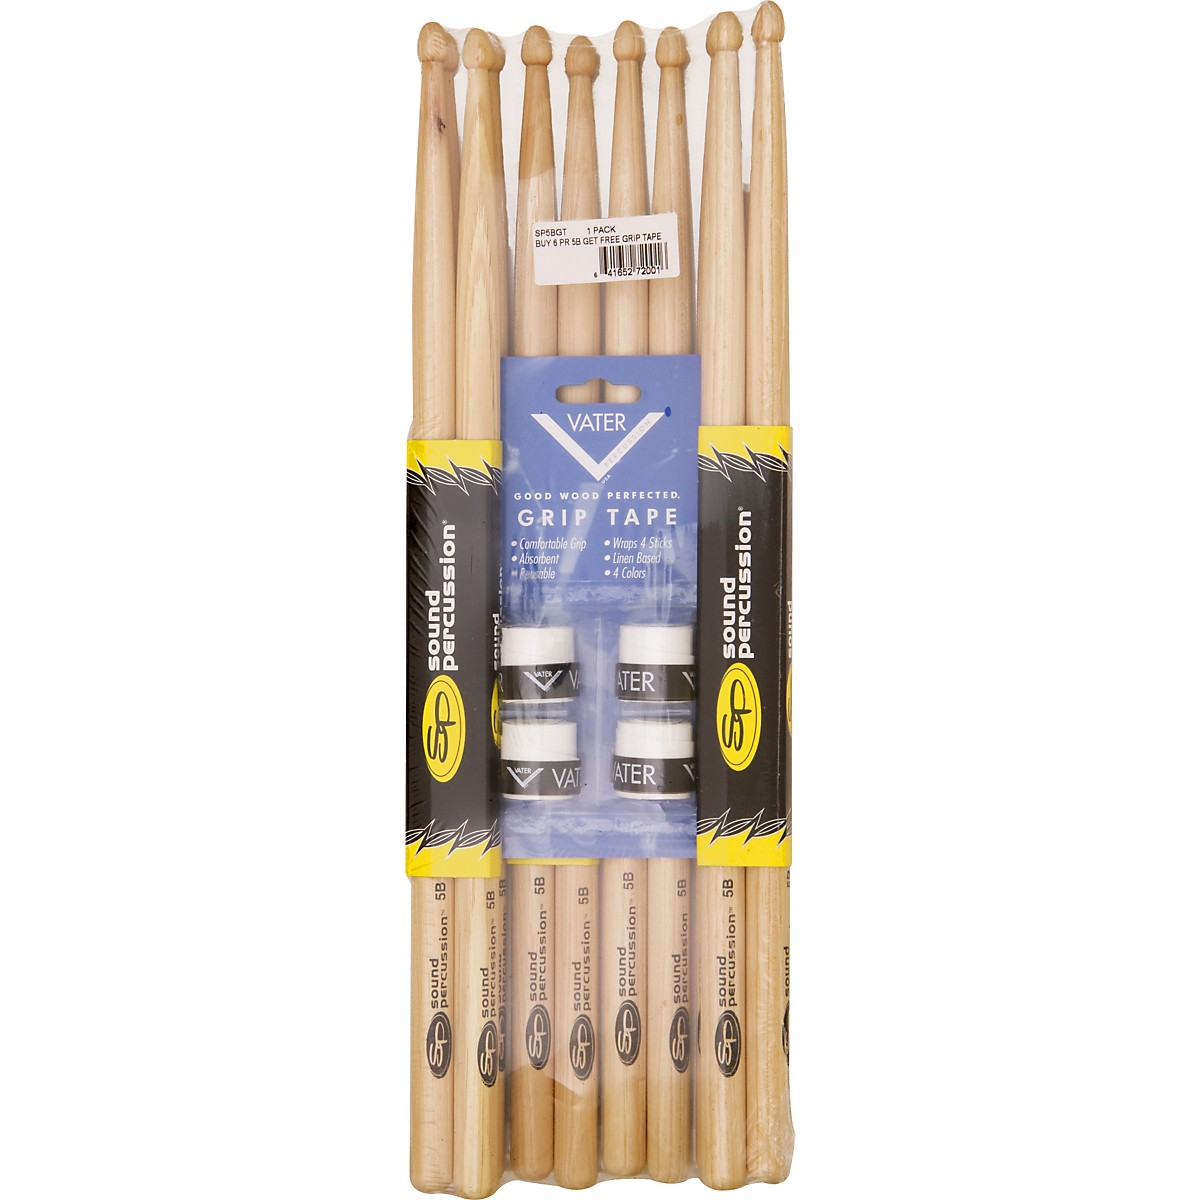 Sound Percussion Labs Buy 6 Pairs of Sound Percussion Sticks Get Free Vater Grip Tape